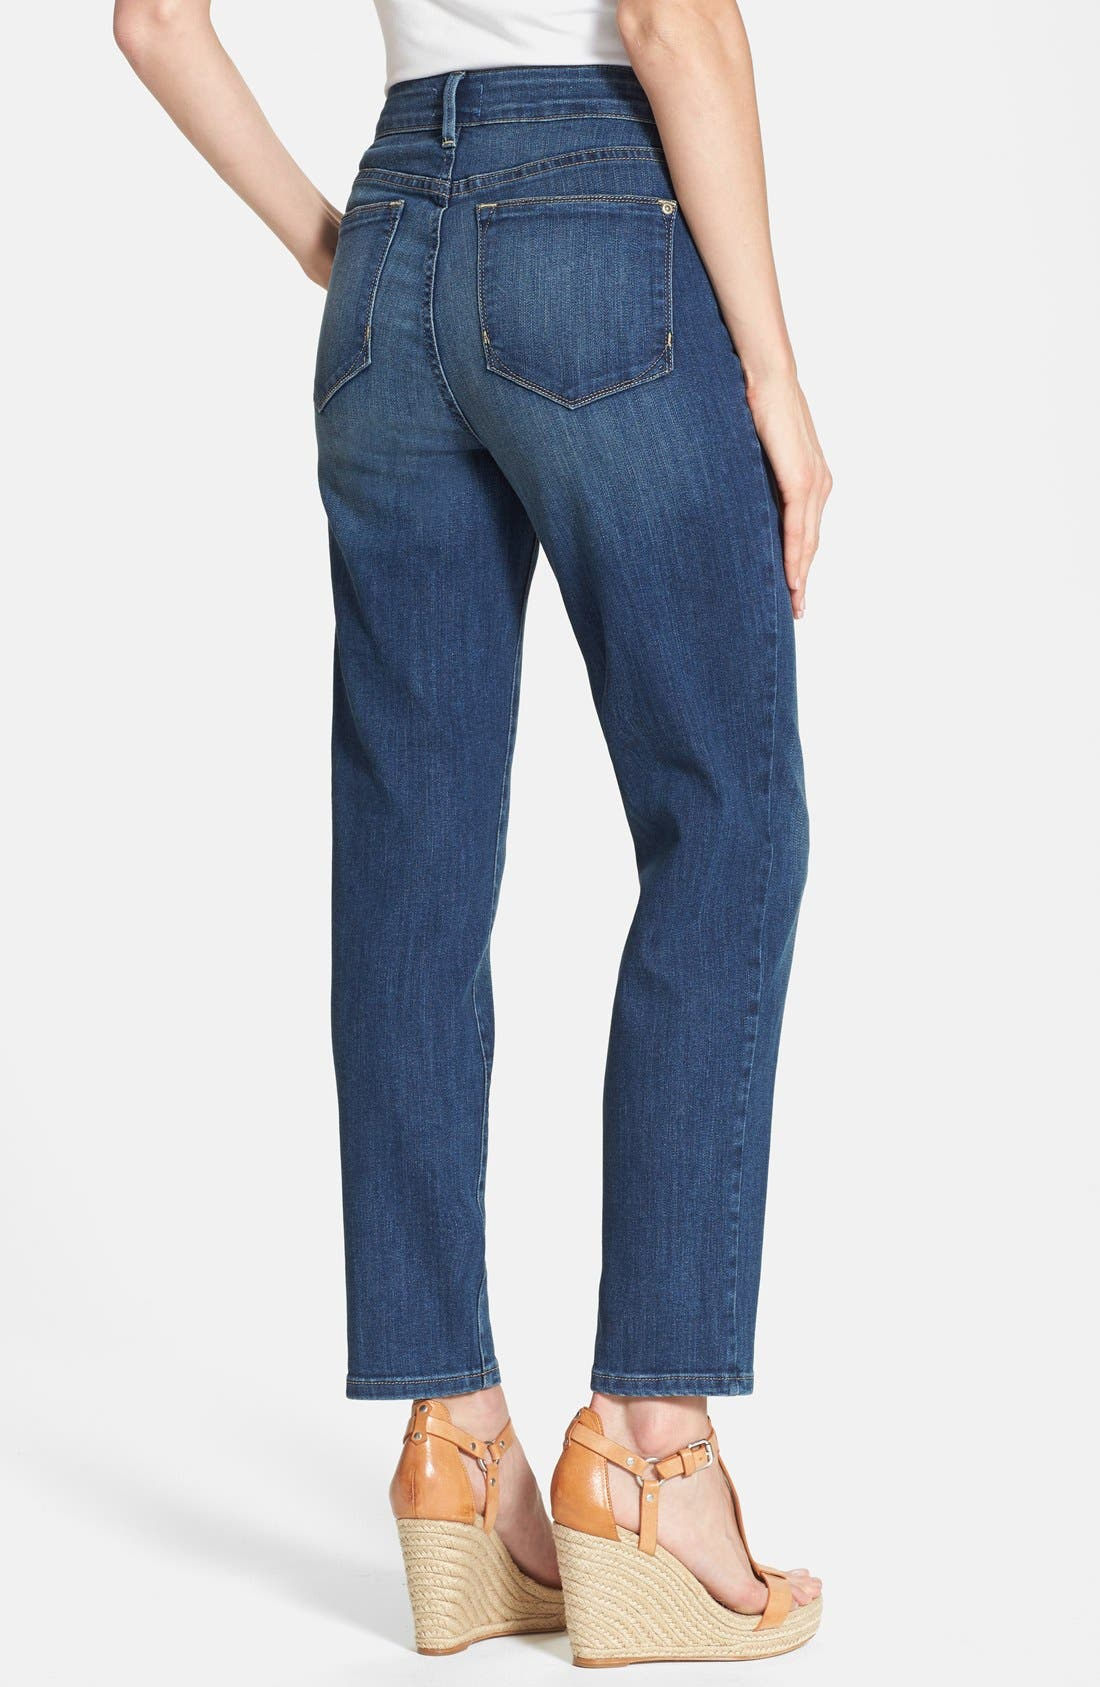 Alternate Image 2  - NYDJ 'Clarissa' Stretch Ankle Skinny Jeans (Pittsburgh) (Petite)